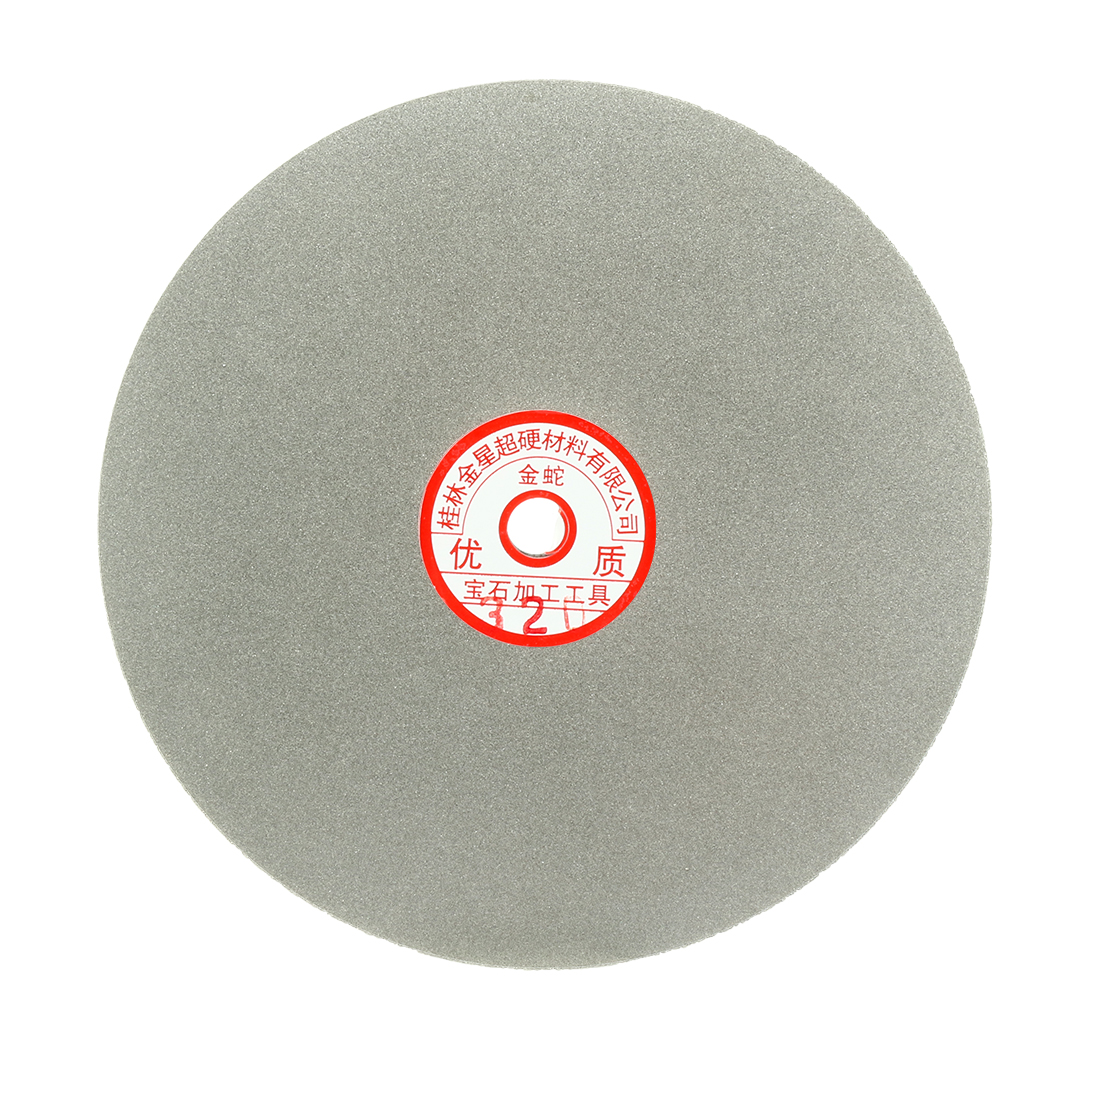 200mm 8-inch Grit 320 Diamond Coated Flat Lap Disk Wheel Grinding Sanding Disc